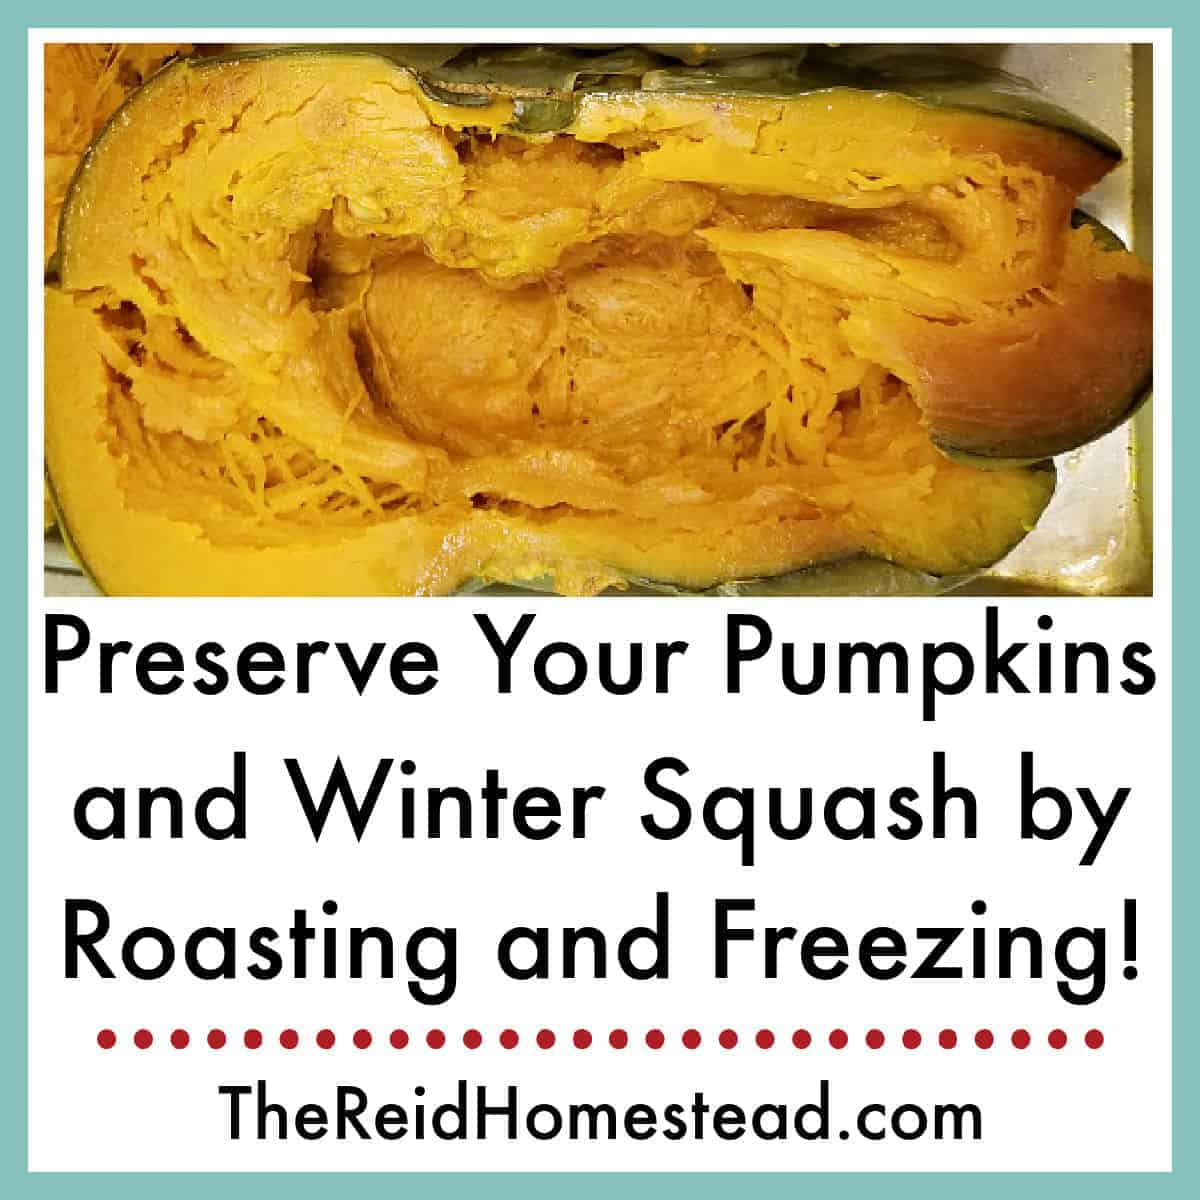 How to Preserve your Pumpkins and Winter Squash by Roasting and Freezing